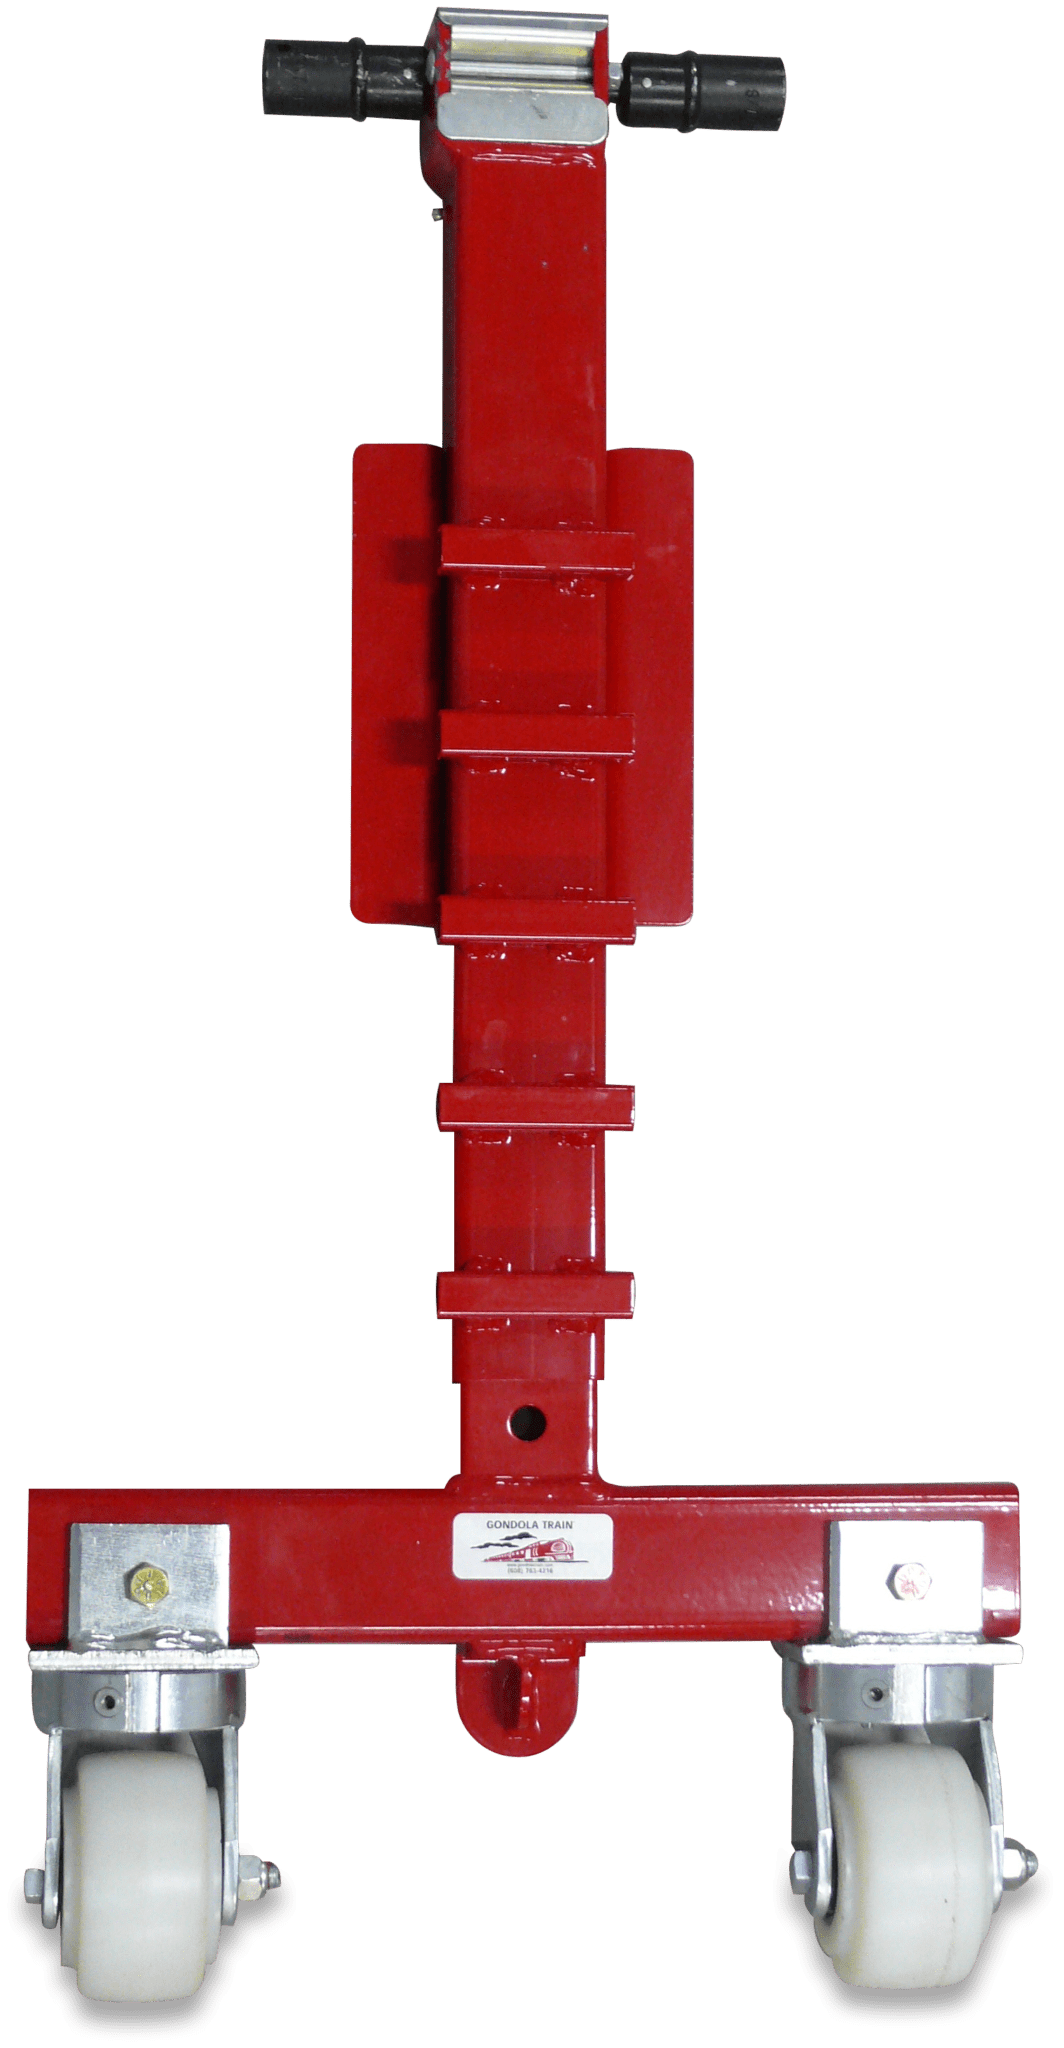 The red Gondola Train pallet lift Jack.